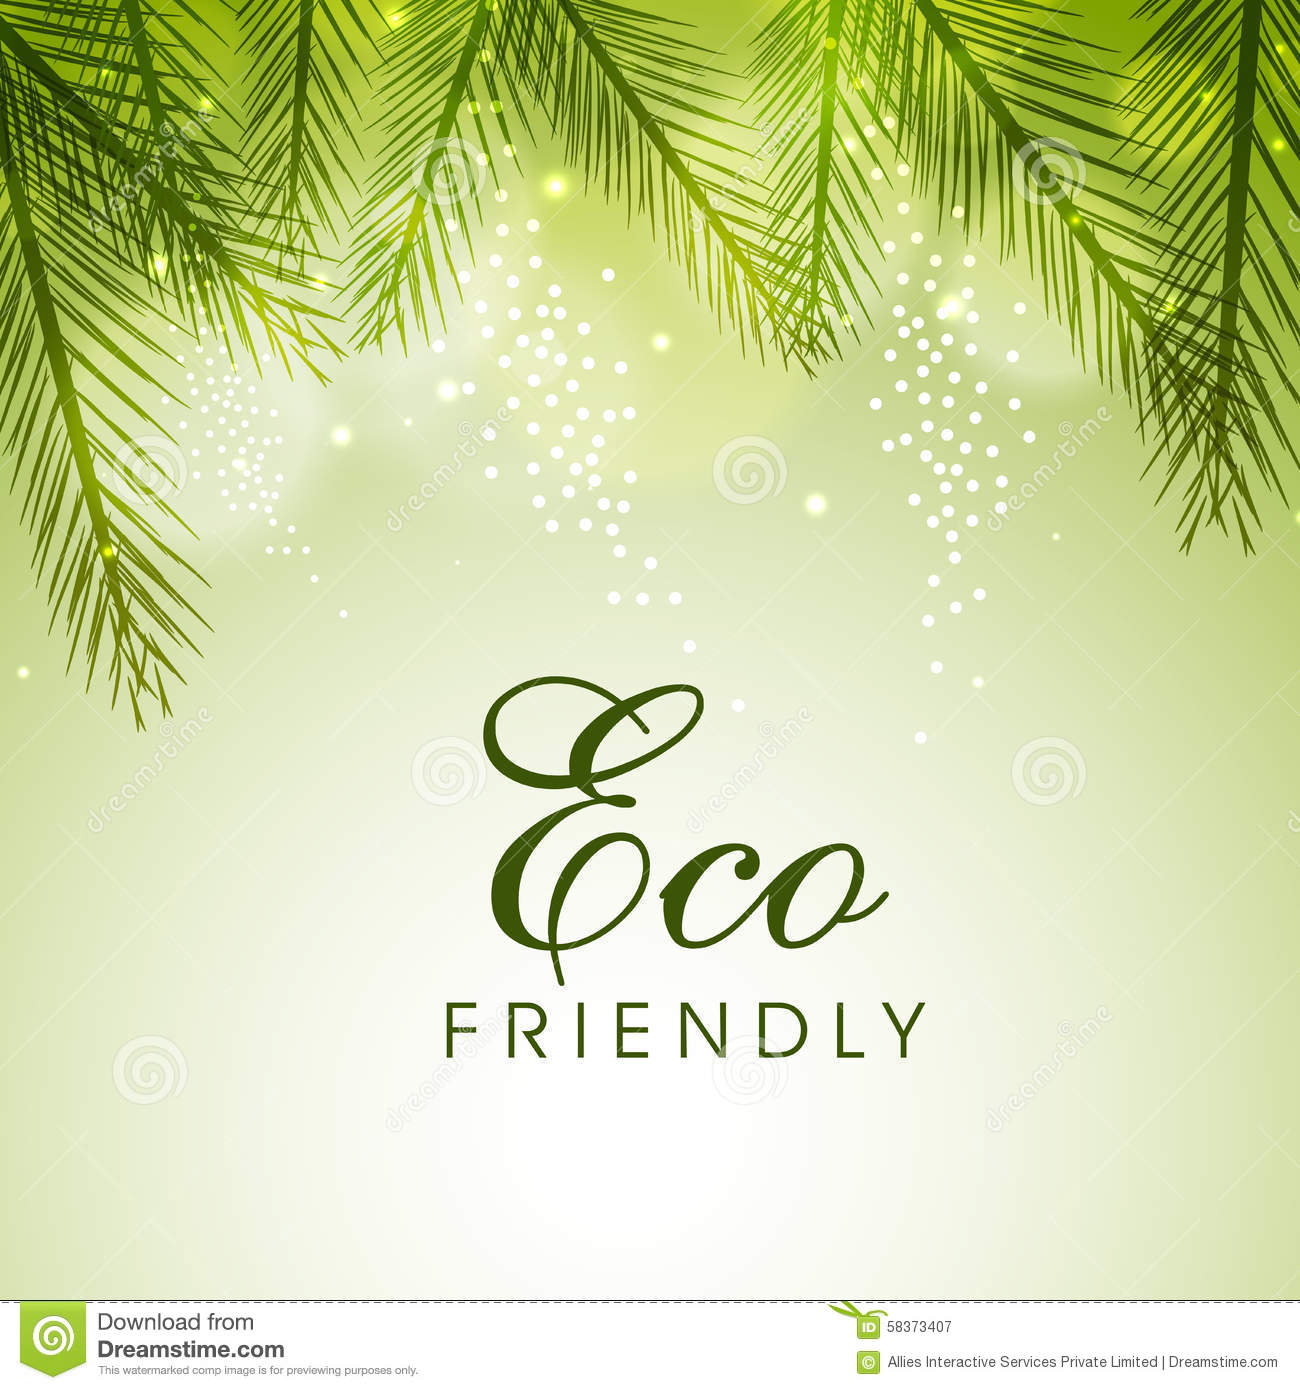 Eco Friendly Poster Stock Vector - Image: 66729663